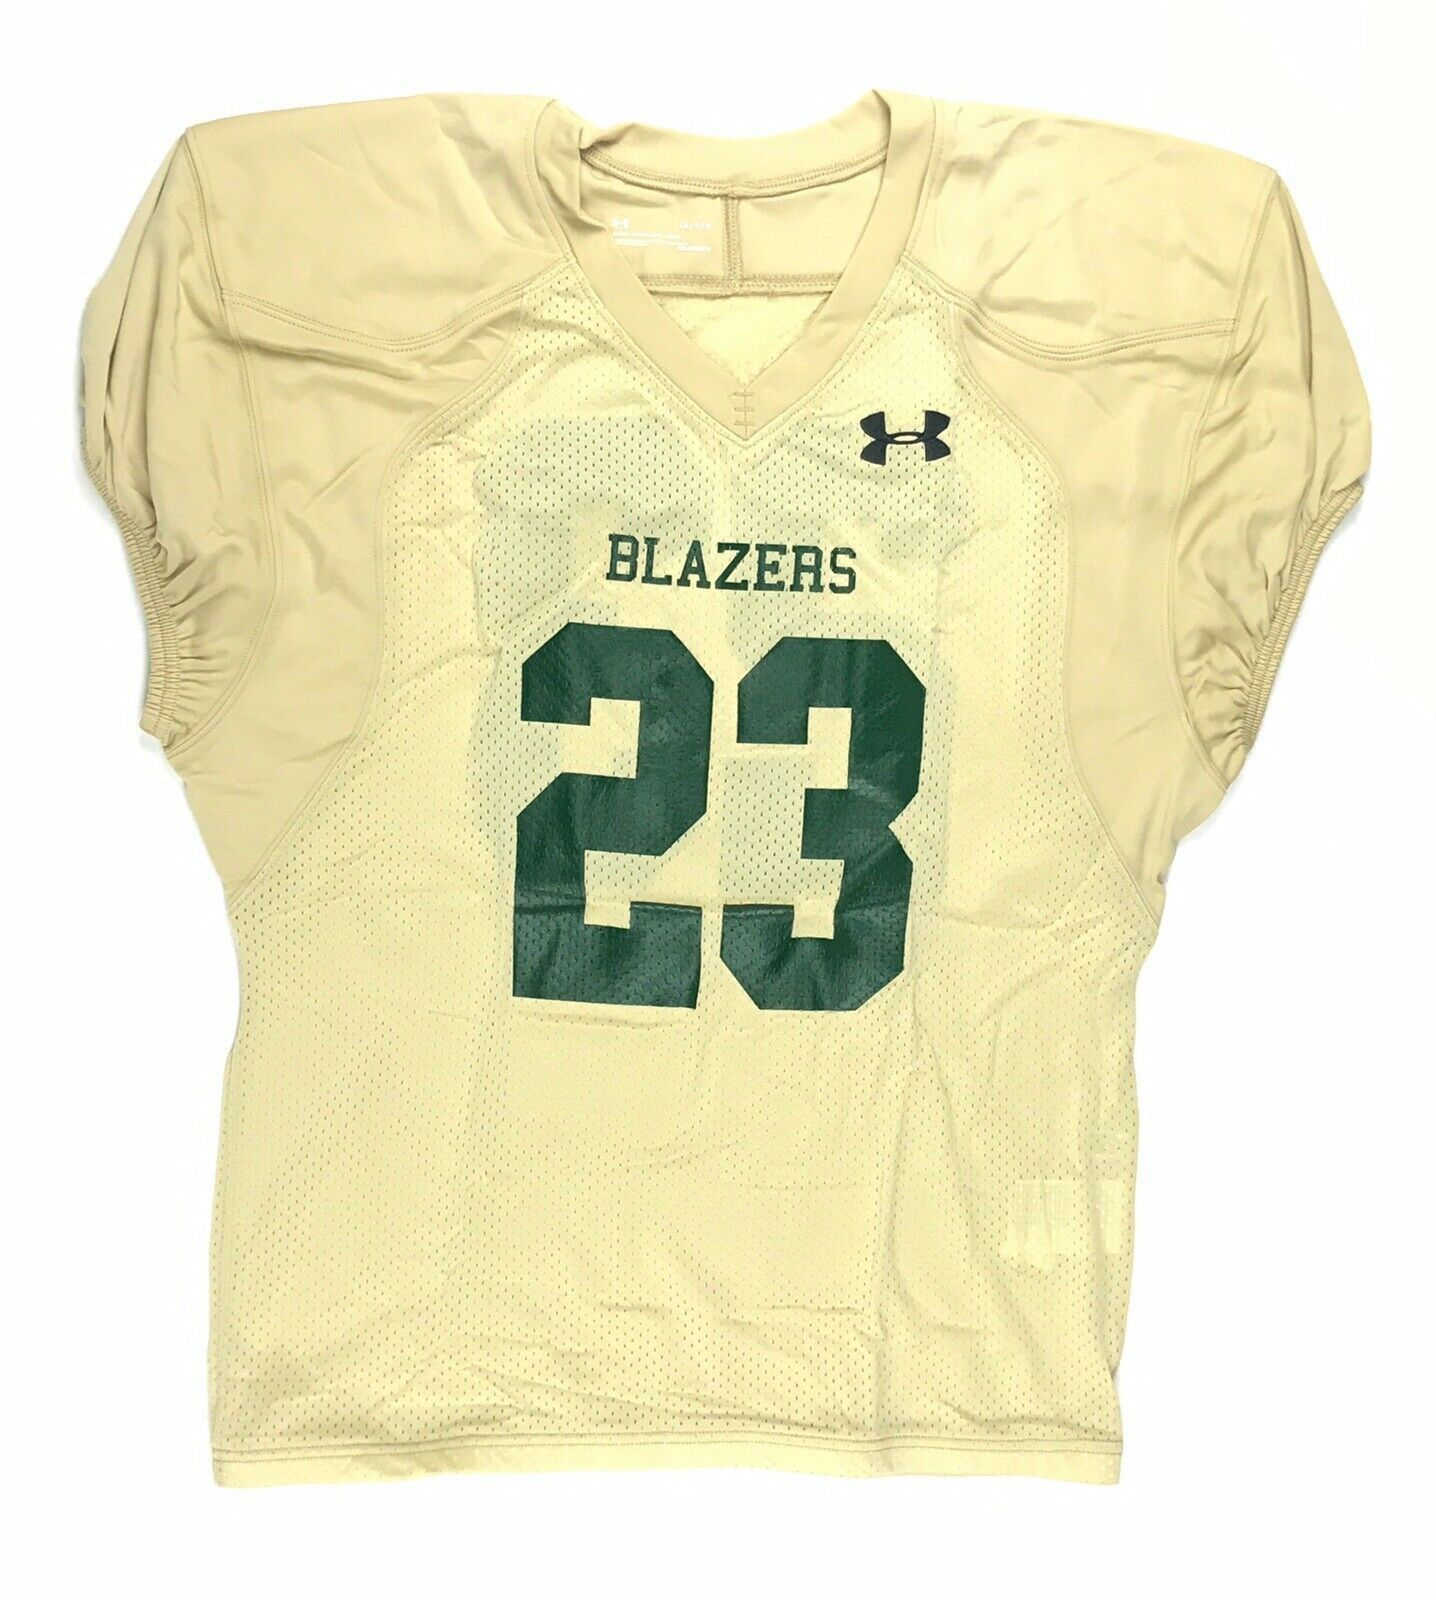 Primary image for New Under Armour Men's L Blazers Football Practice Mesh Jersey #23 Gold Green